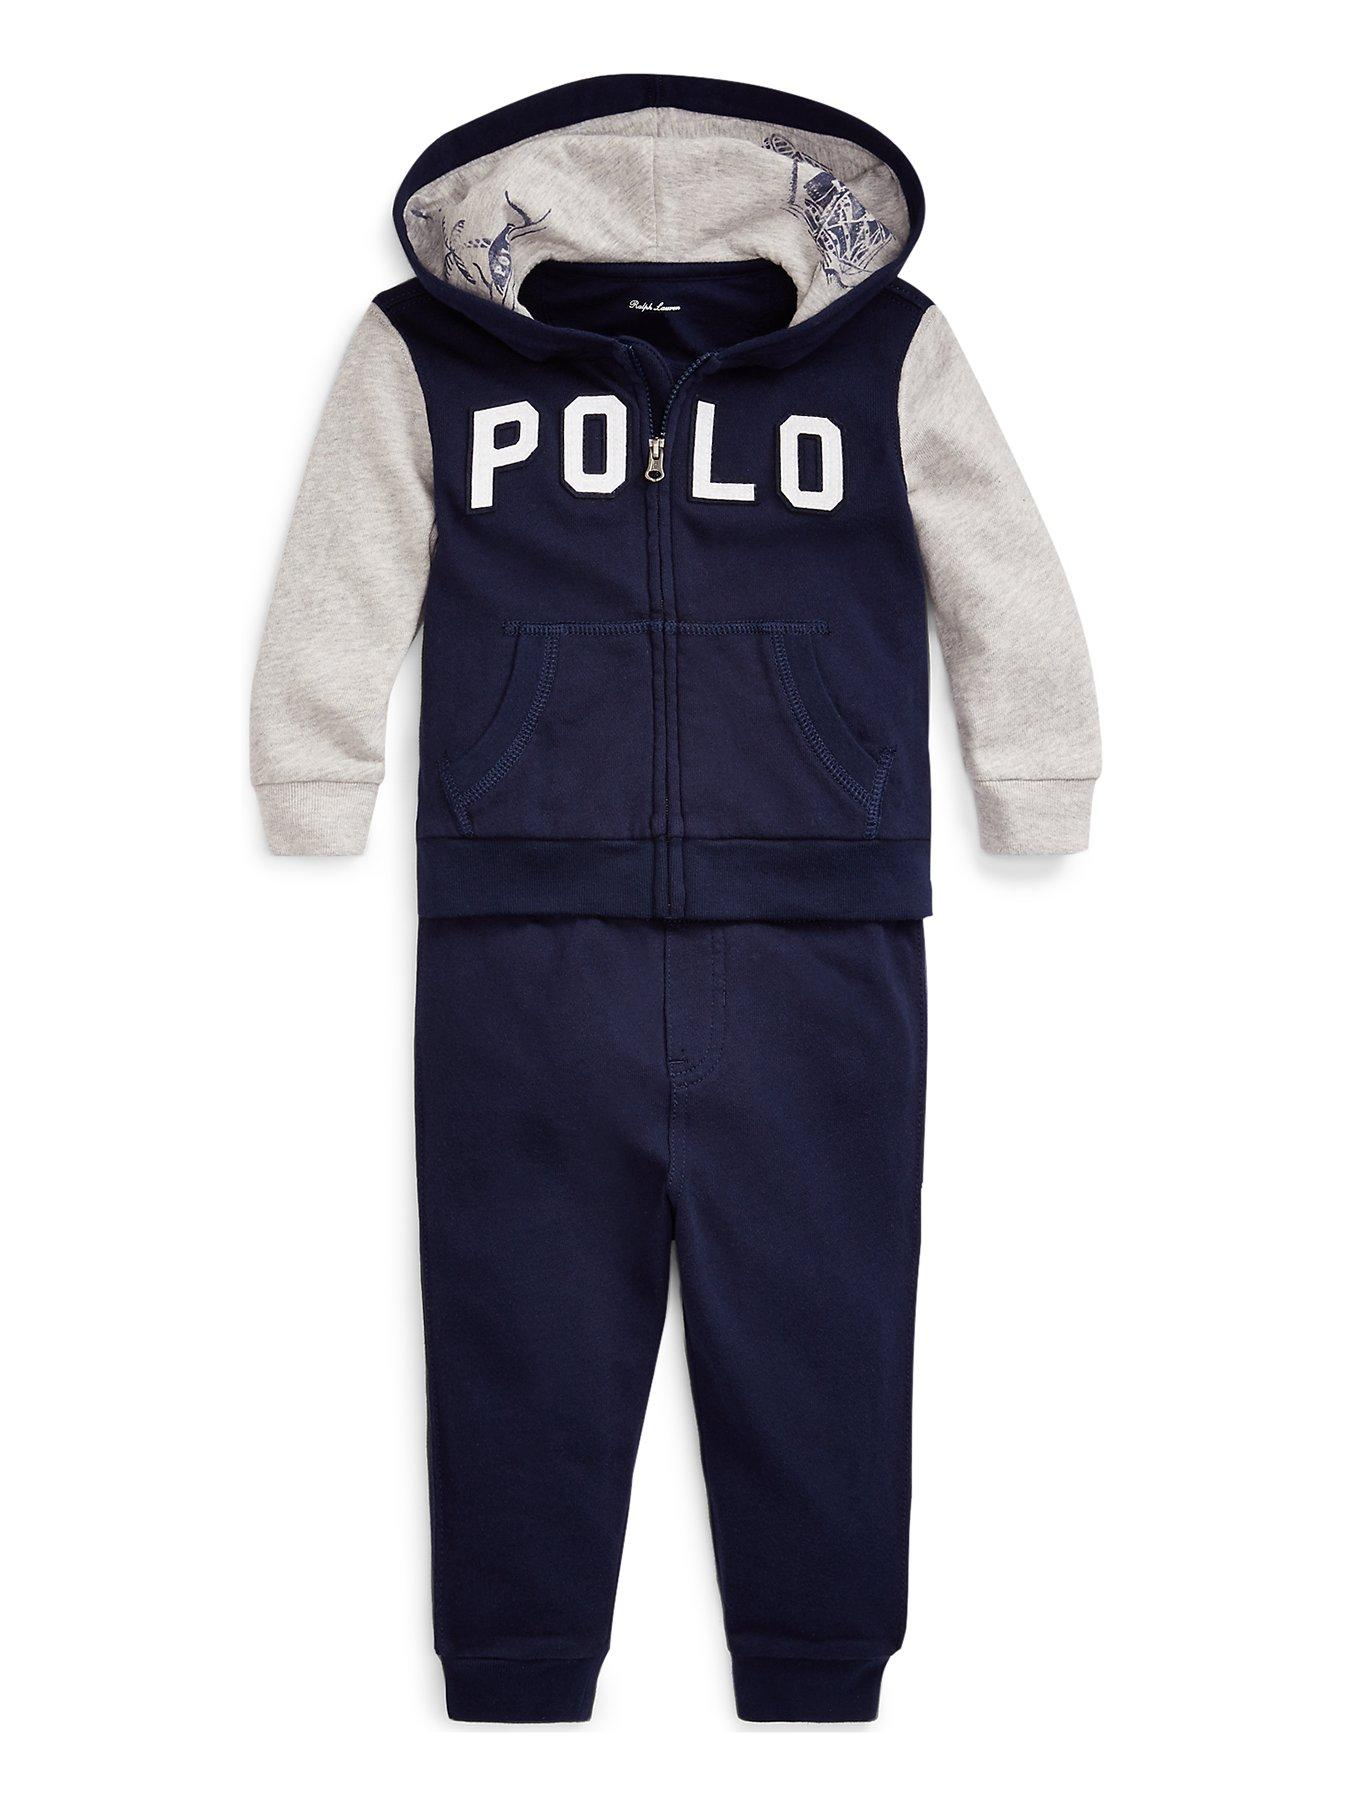 Contrast Side Stripe Arm Patch Babies Tracksuit  Baby Boys Girls Size